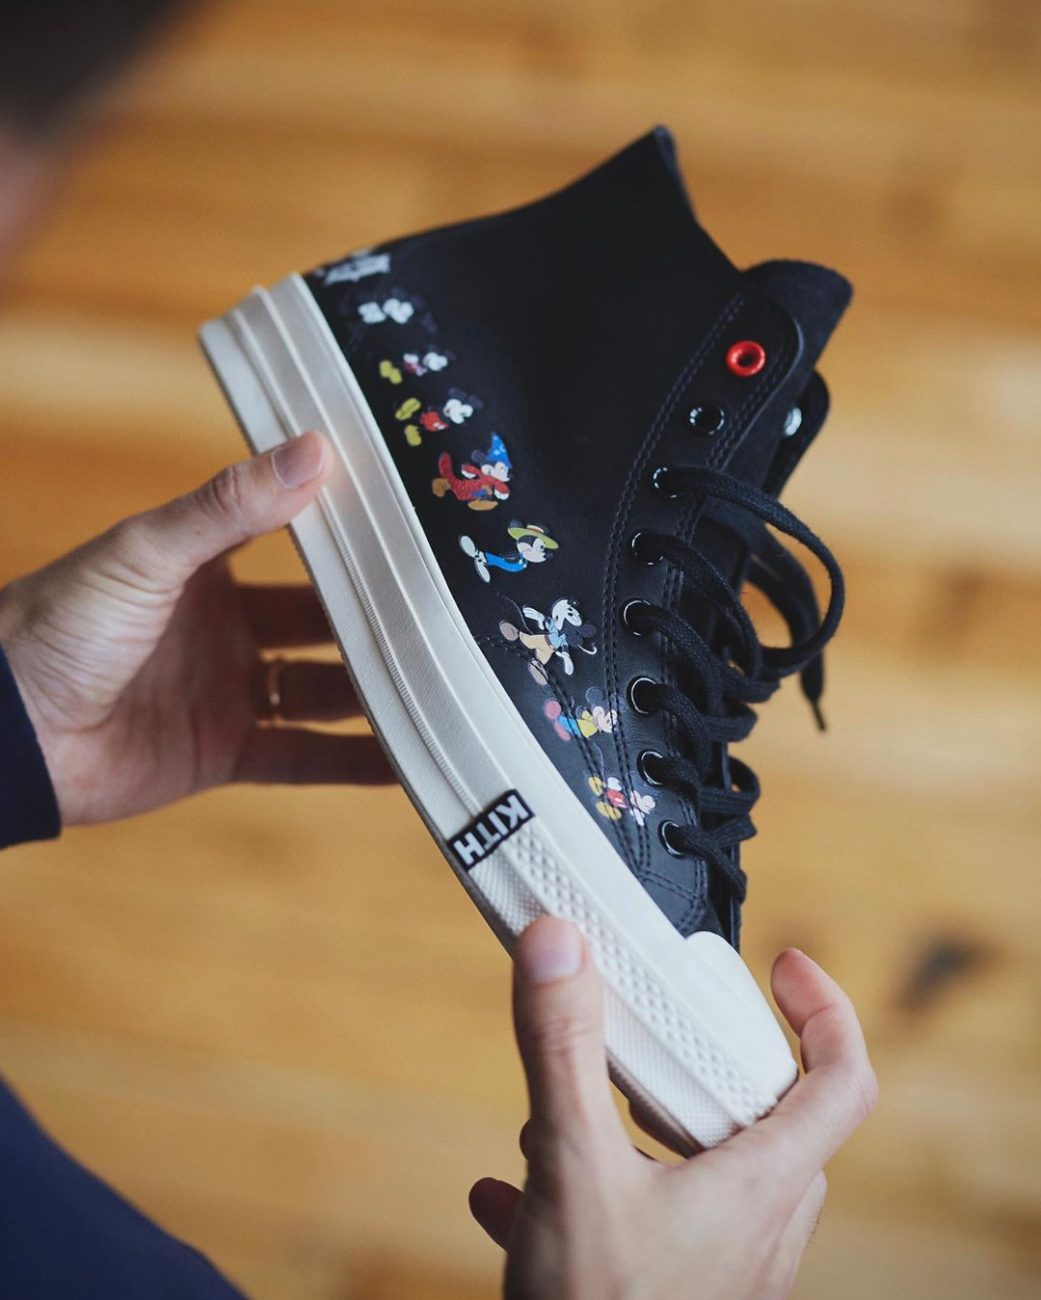 71530162_478kith-disney-sneakers-collection-chuck-taylor-70